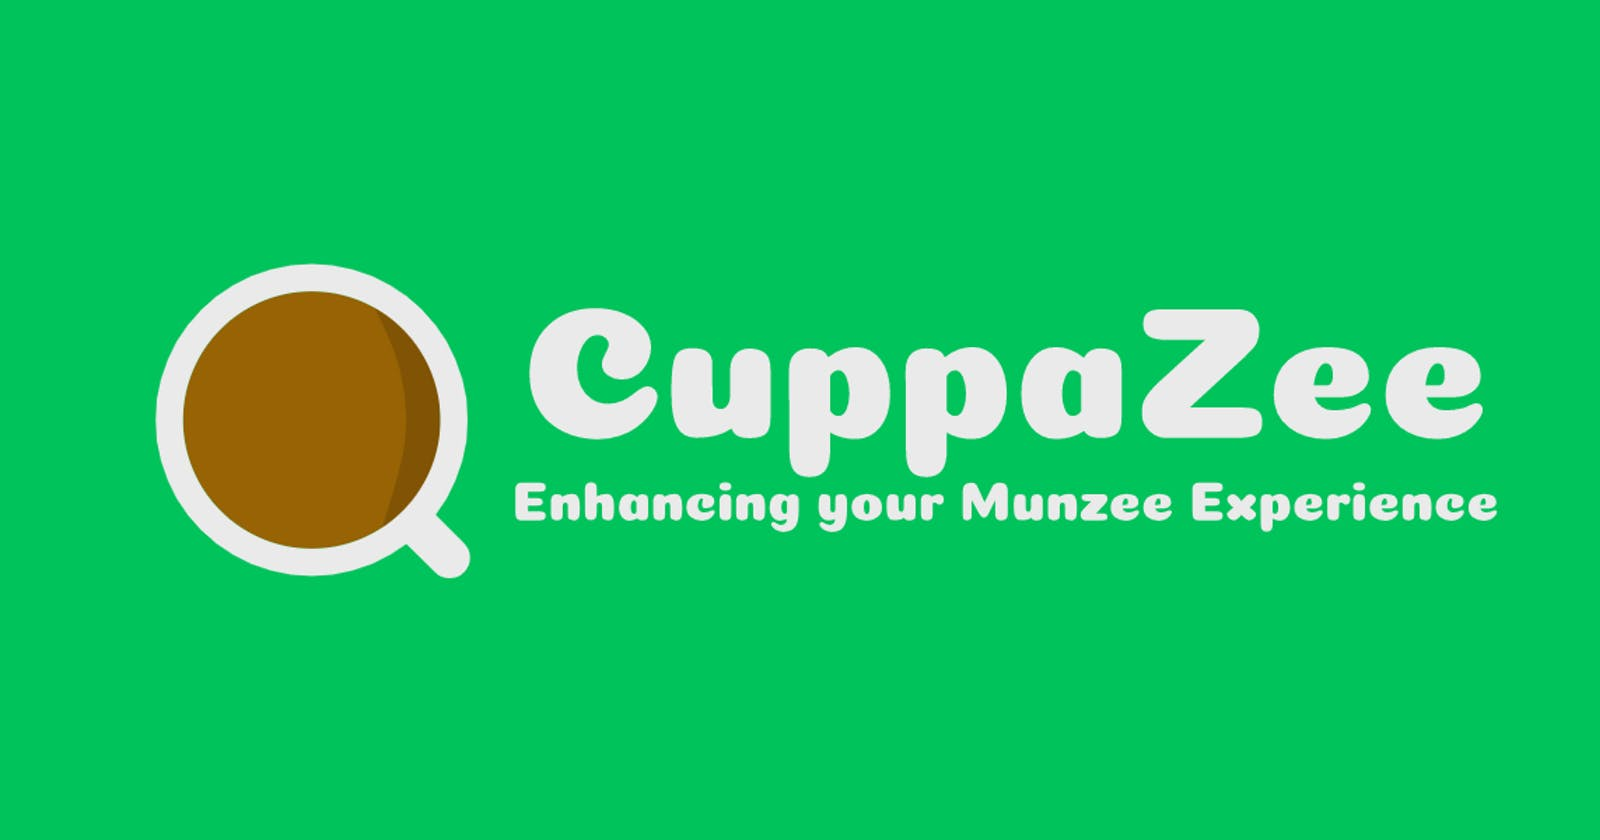 On the shutdown on Munzee.DK and MunzStat, the future of CuppaZee and New Features